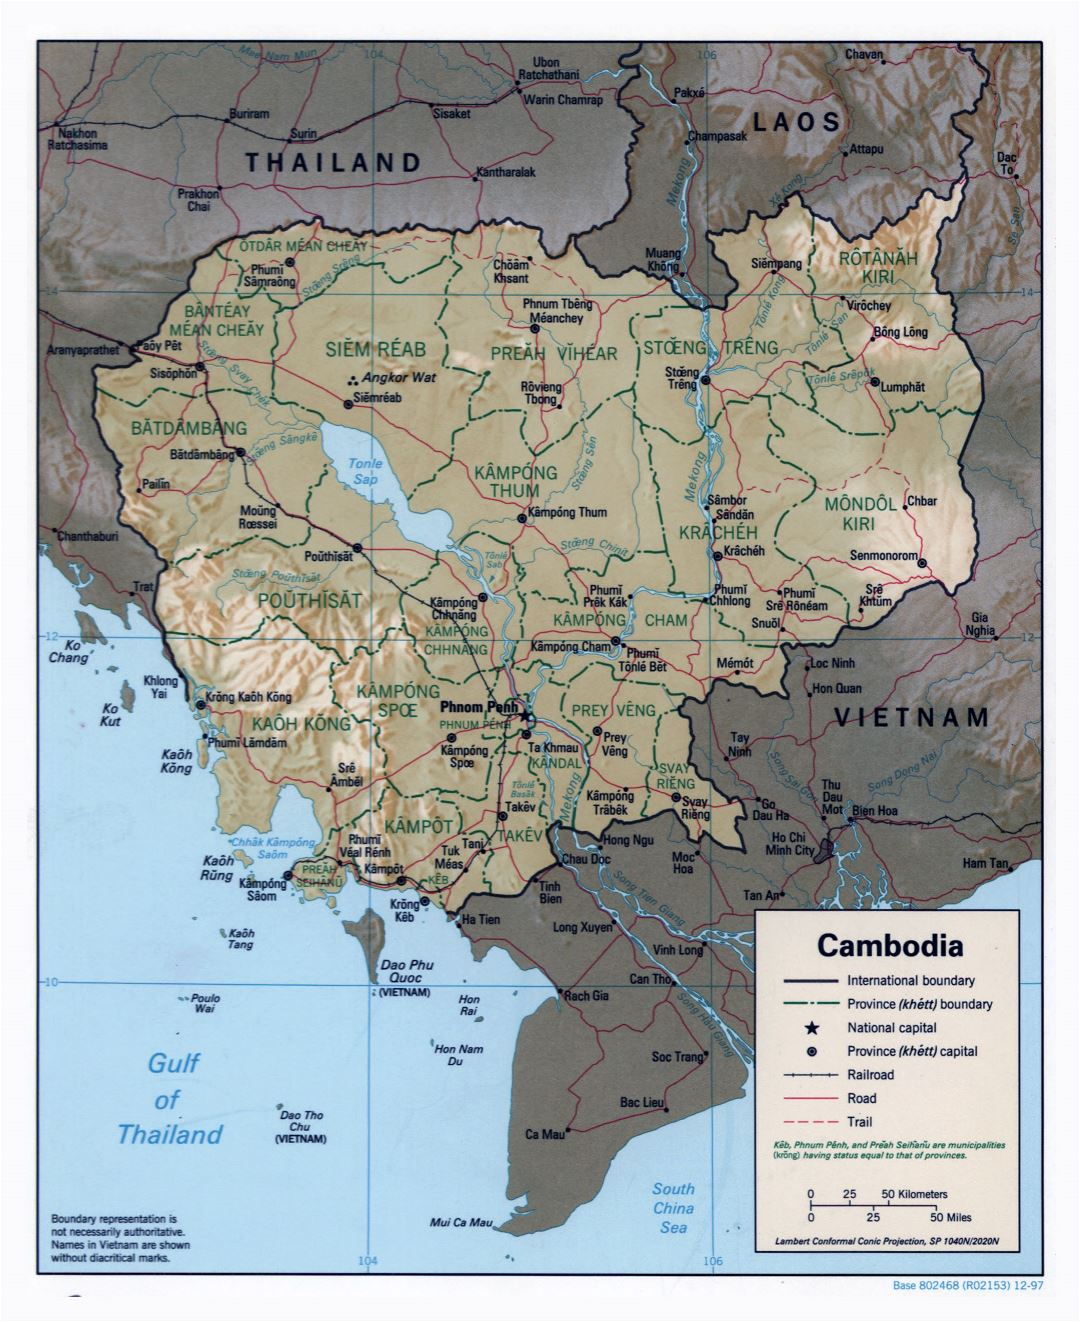 Large detailed political and administrative map of Cambodia with relief, roads, railroads and major cities - 1997